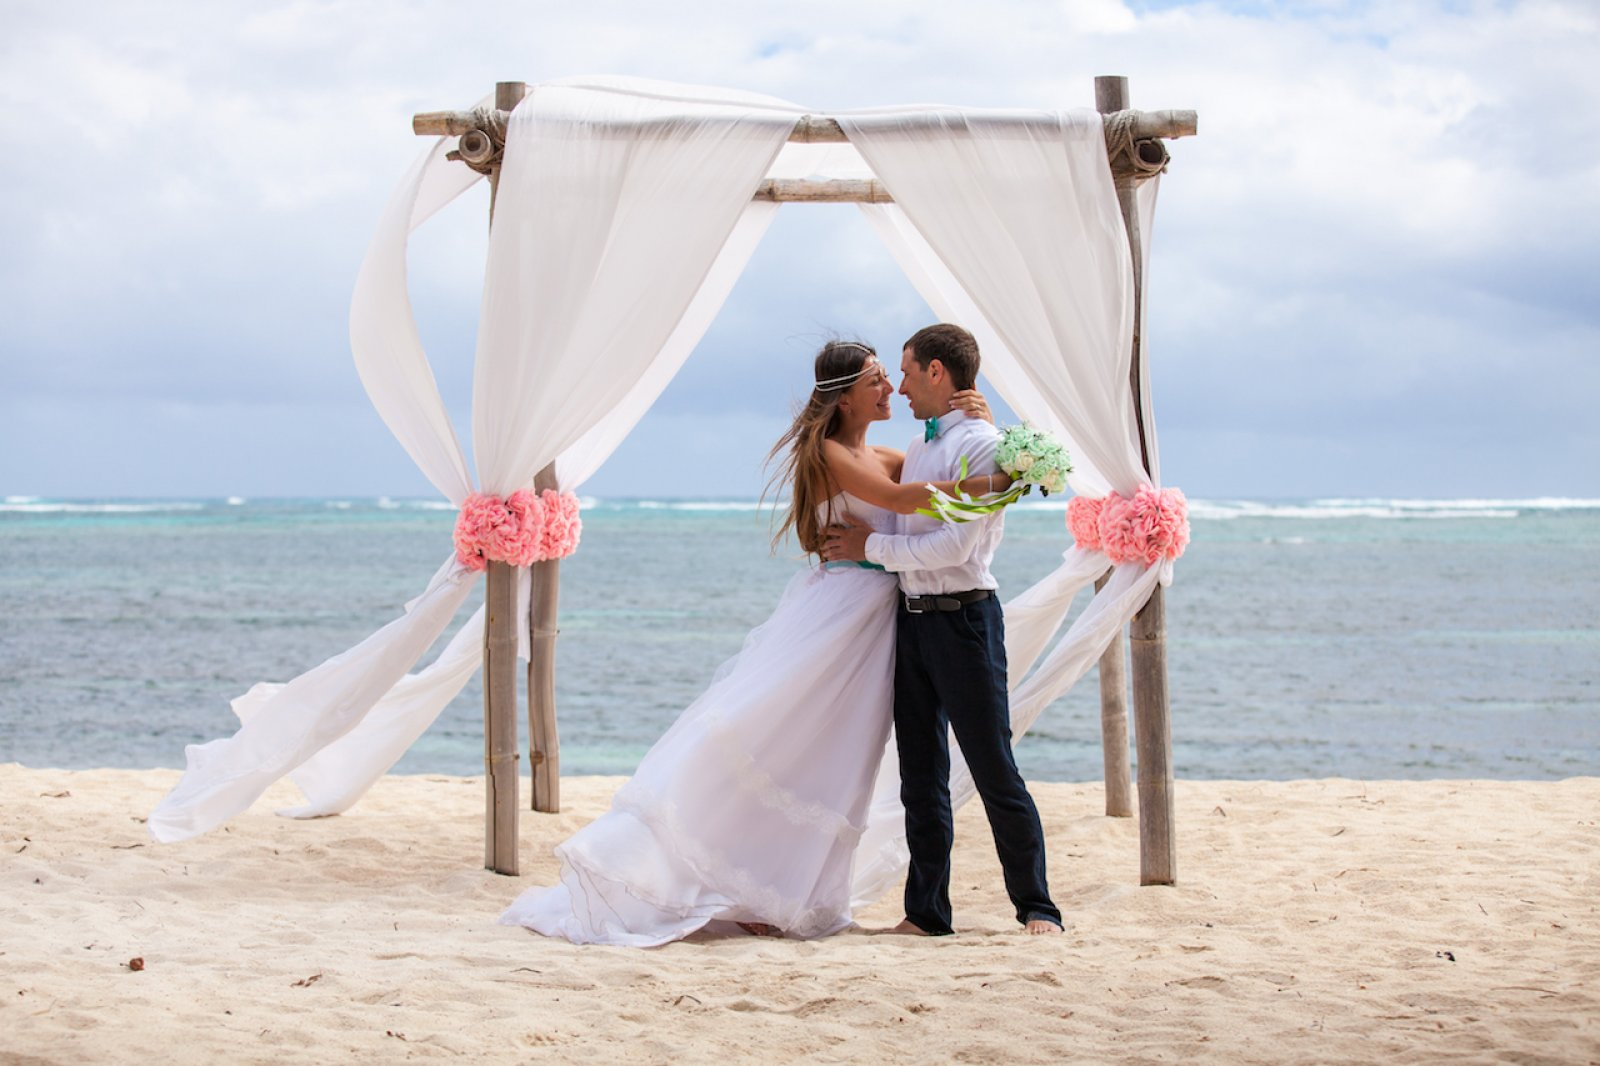 How to plan a destination wedding love our wedding for Plan a destination wedding